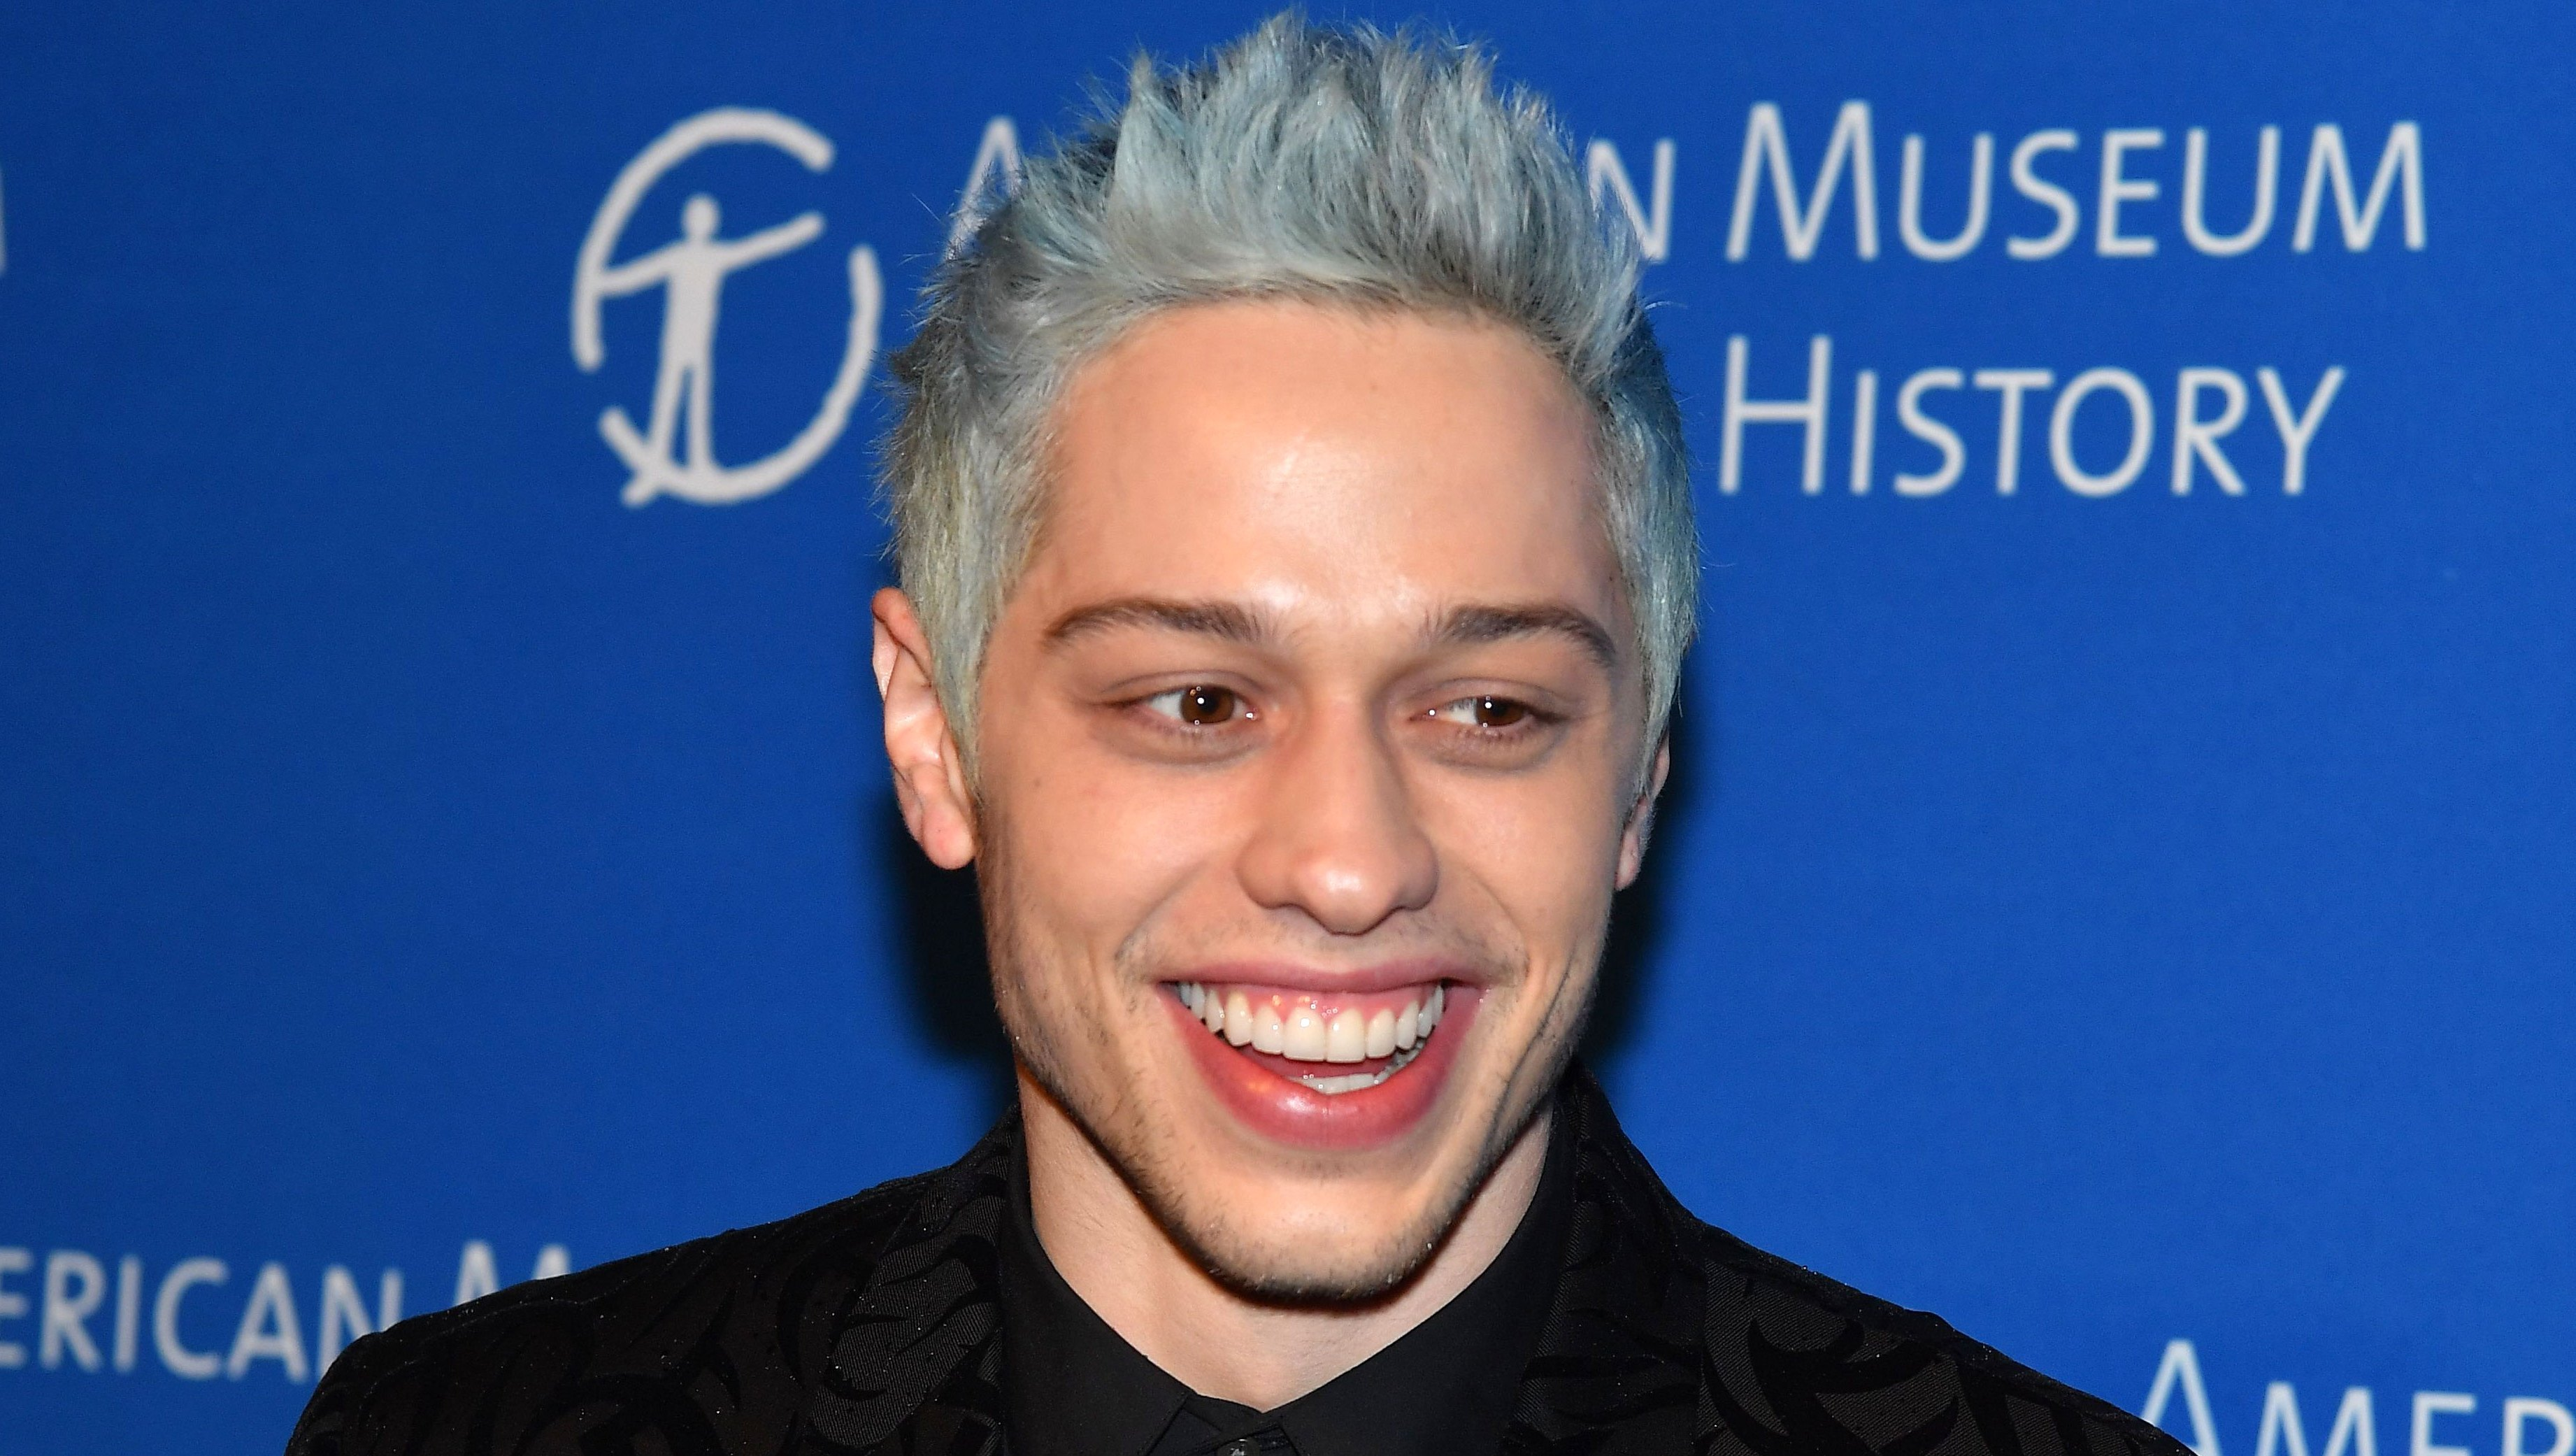 Pete-Davidson-Hooked-Up-With- Friend-After-Ariana- Grande-Split